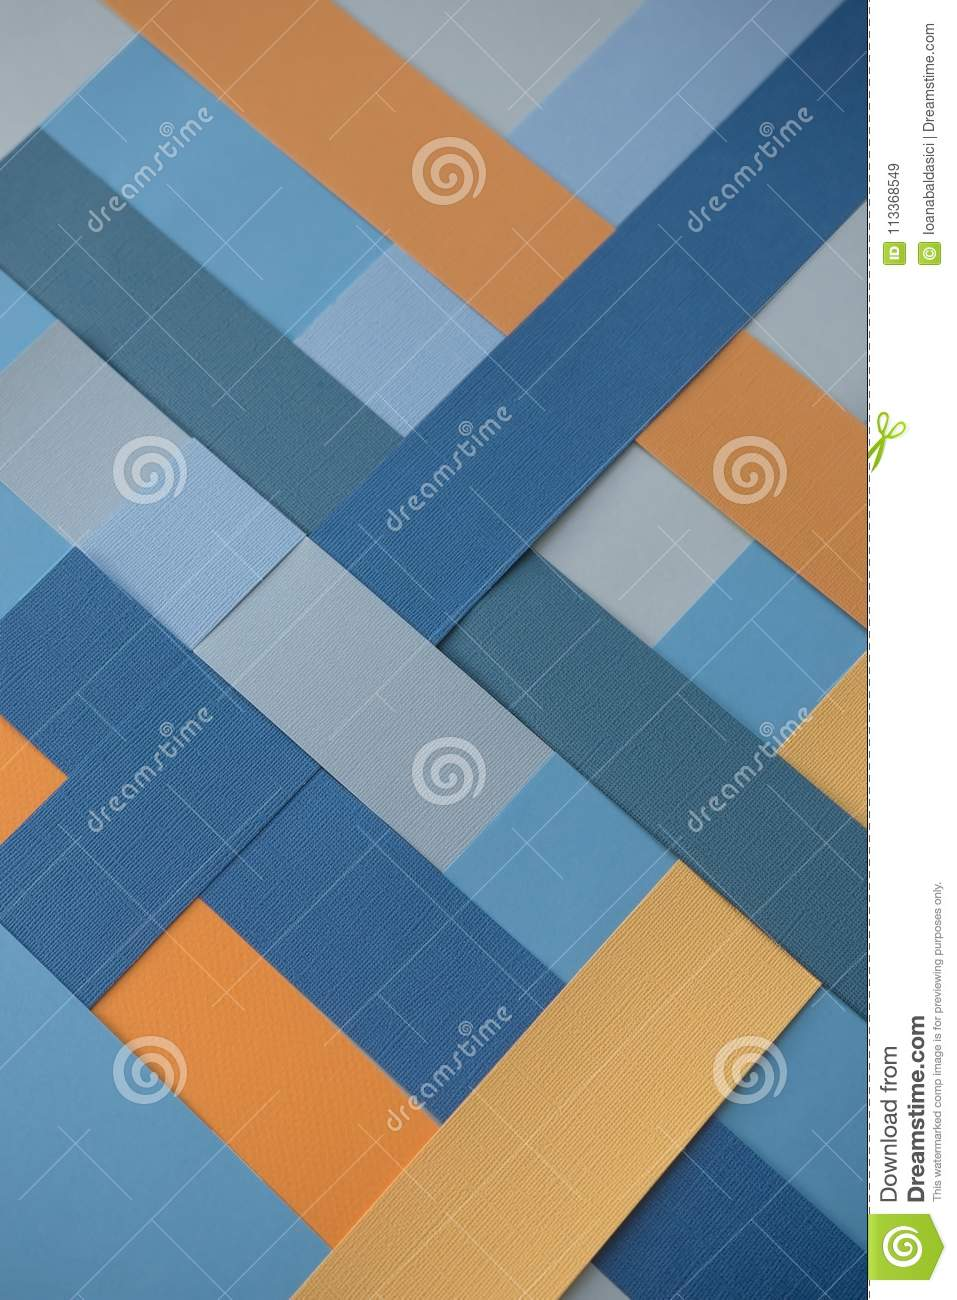 Background with geometric patterns in blue and yellow colors